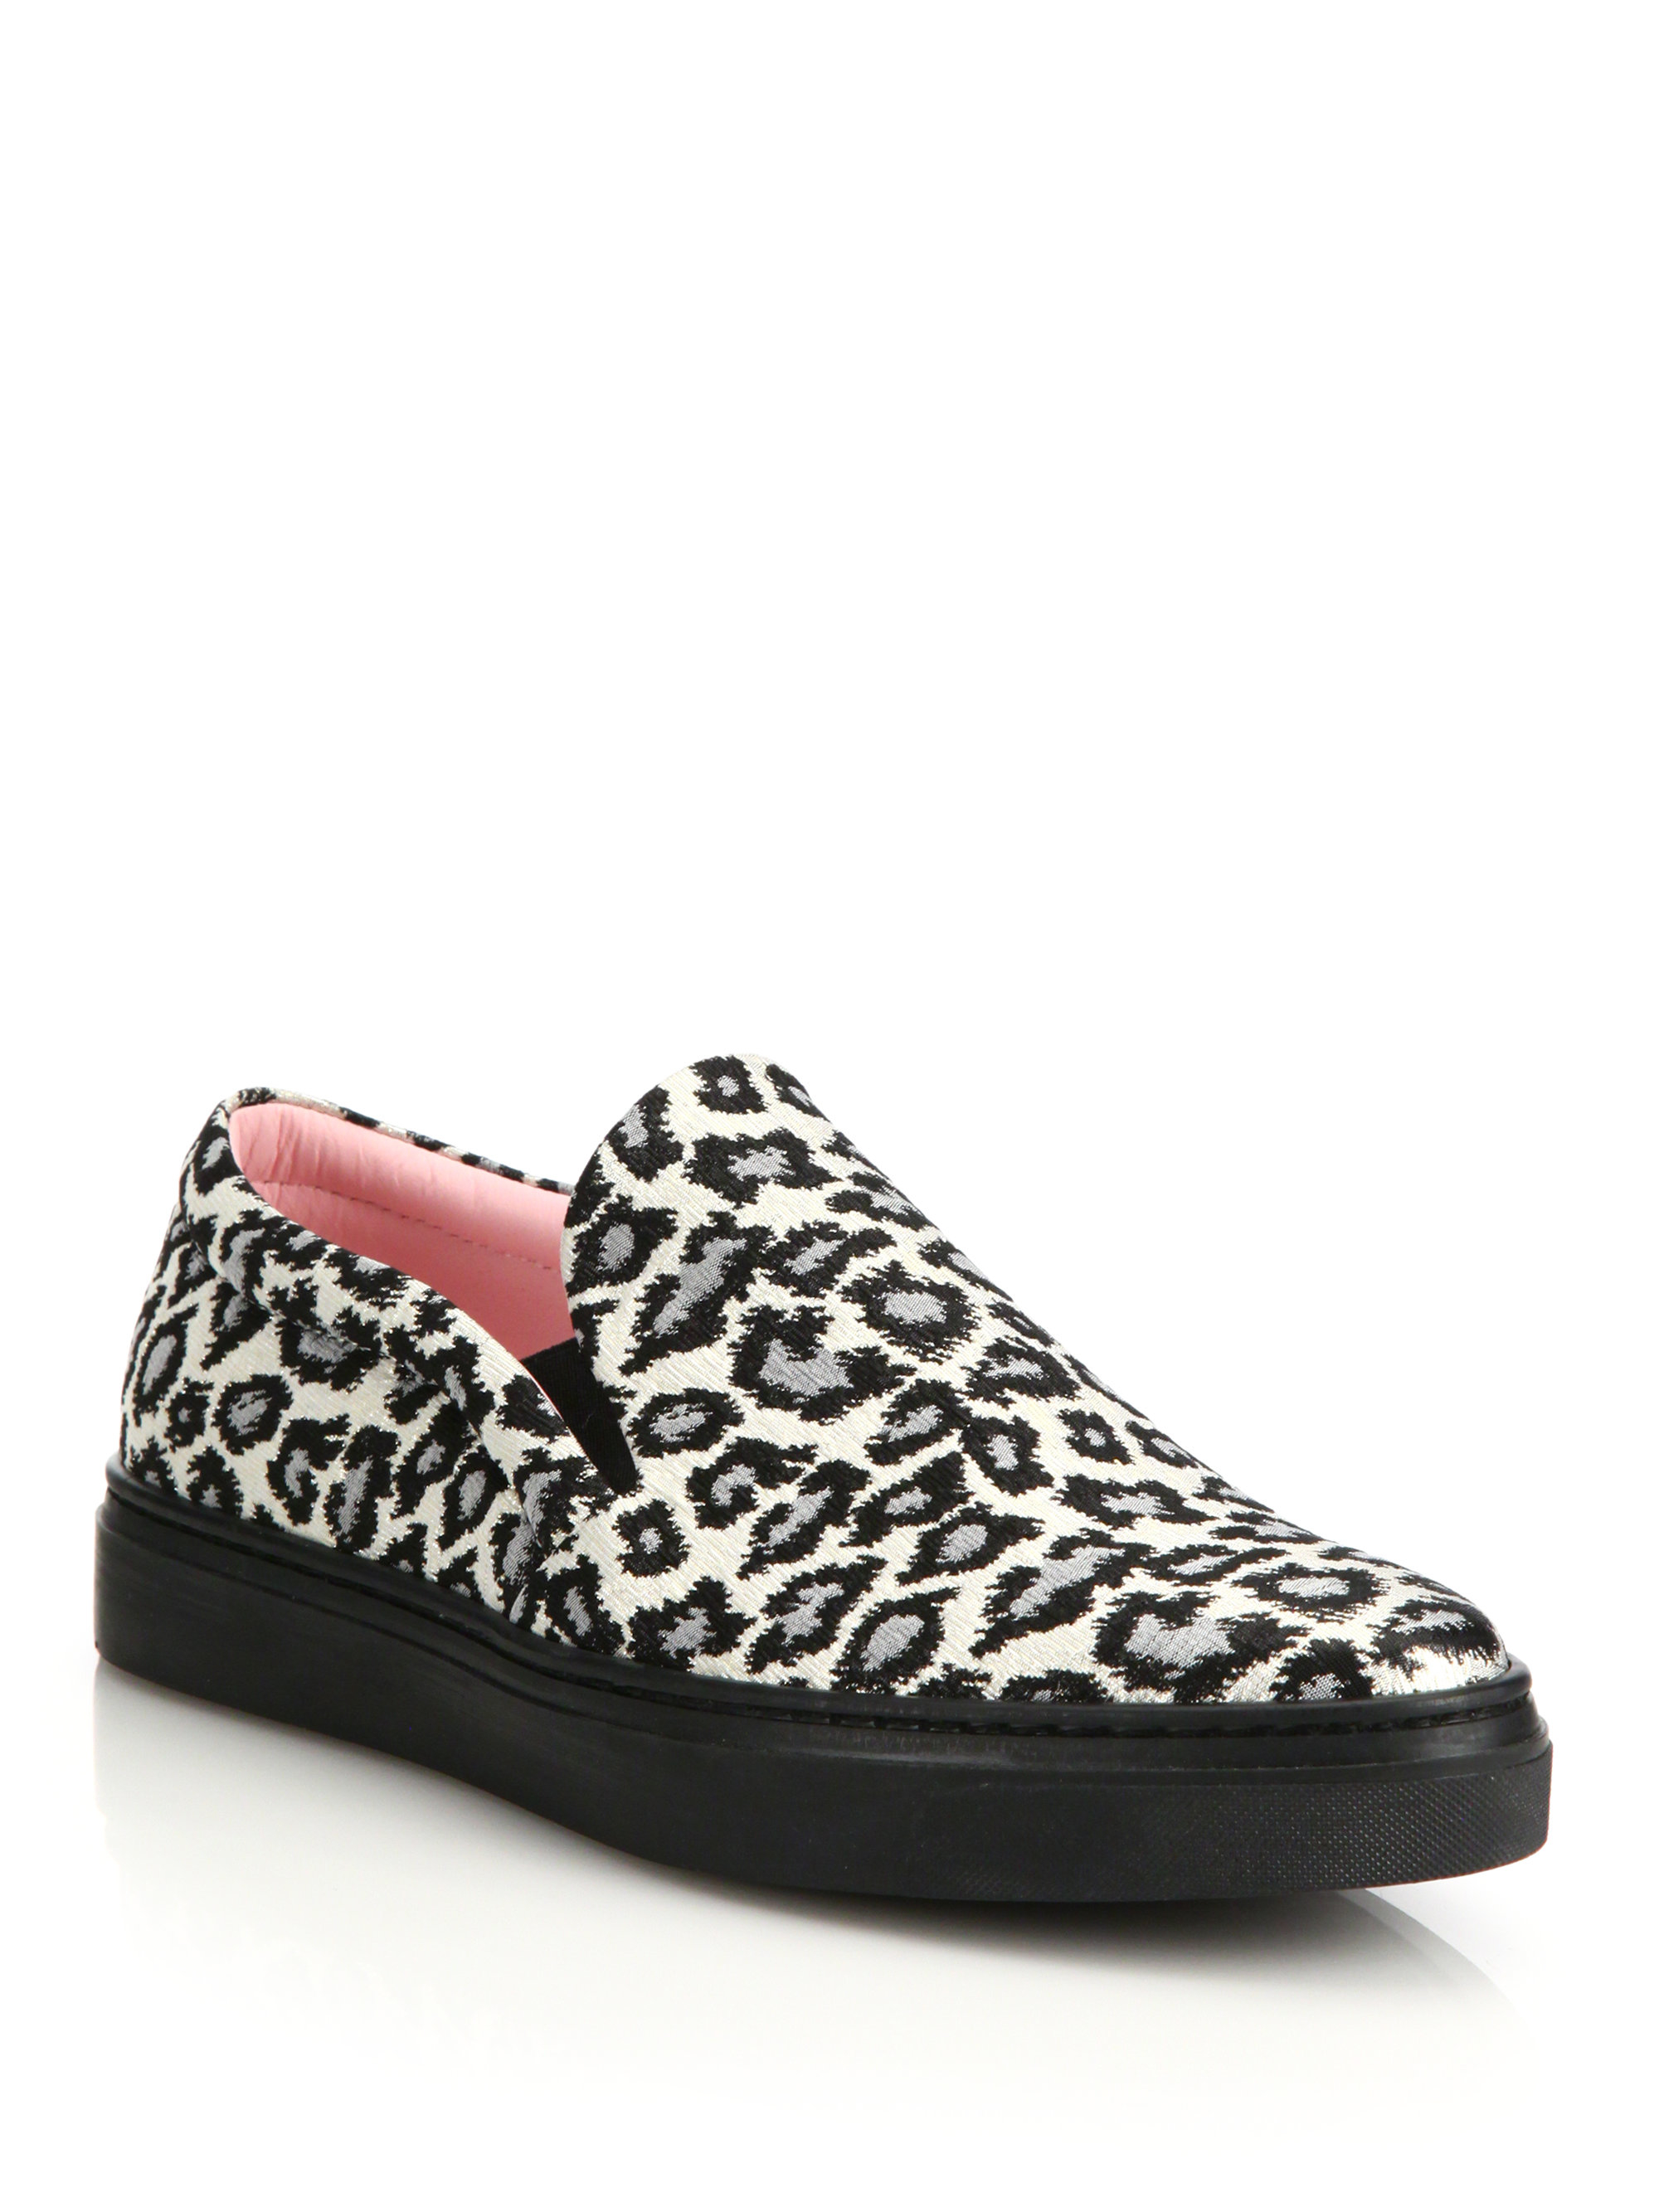 animal print slip on sneakers 28 images undercover leopard print ponyskin slip on sneakers. Black Bedroom Furniture Sets. Home Design Ideas